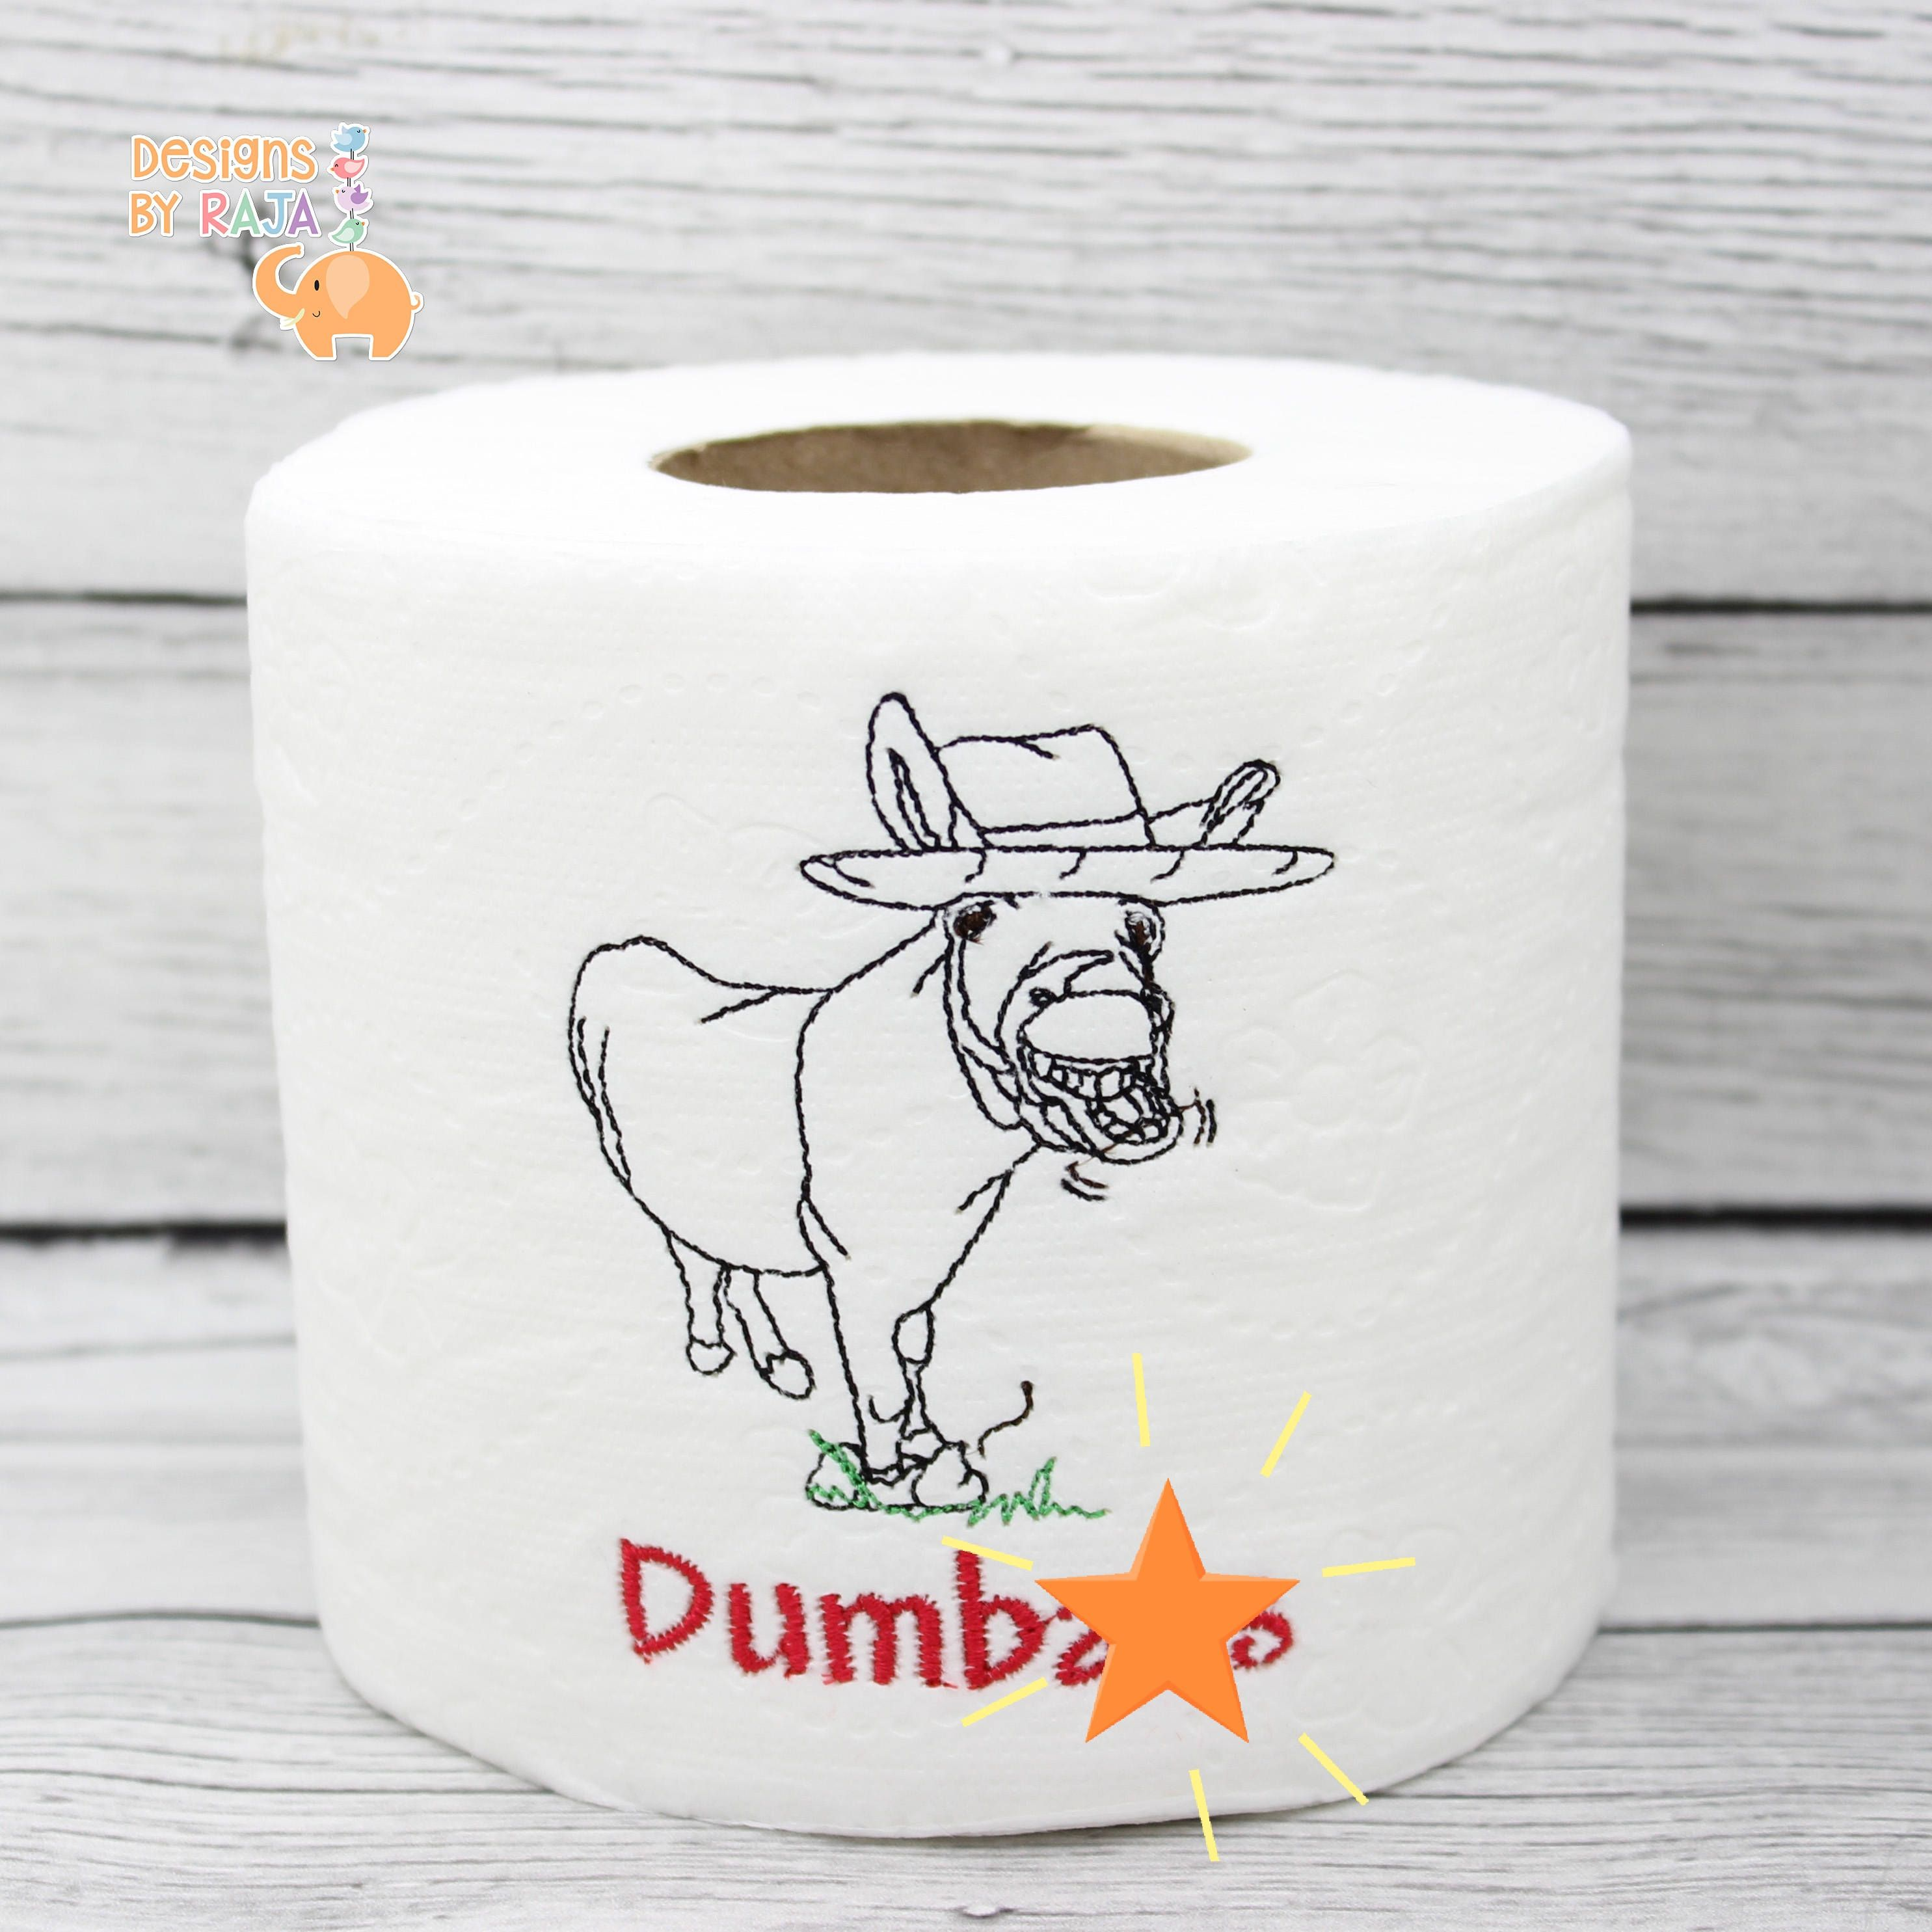 Embroidery designs for toilet paper - Mature Dumb Butt Donkey Embroidered Toilet Paper Snarky Humor Birthday Gift Funny Gag